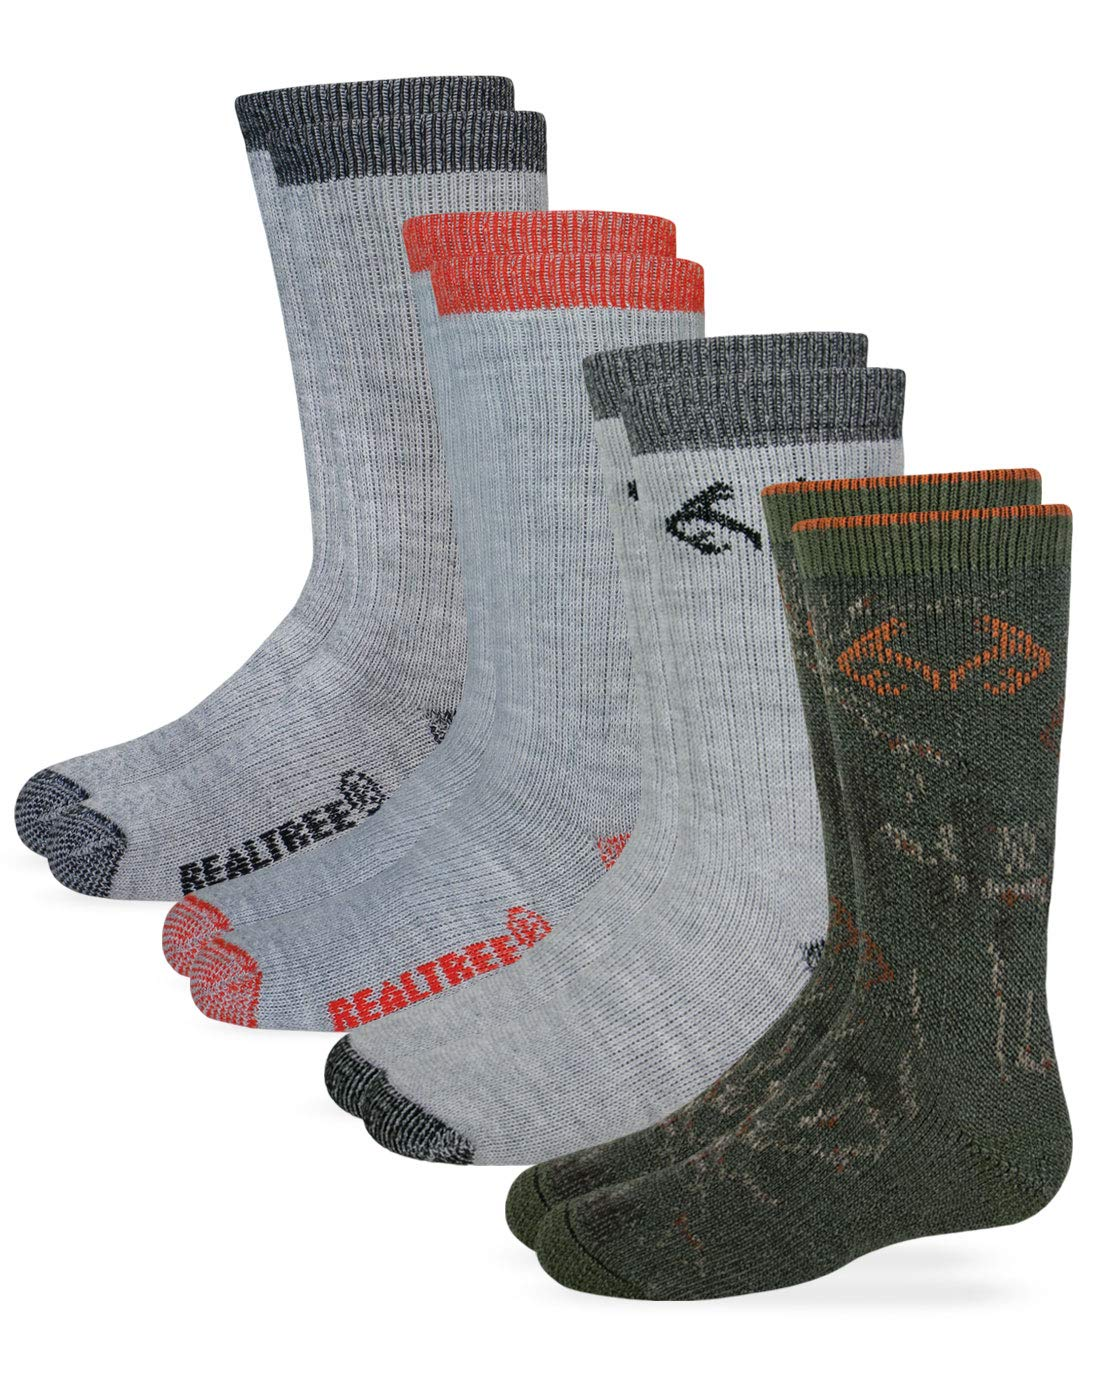 Realtree Boys Boot Sock (4- Pack) by Realtree